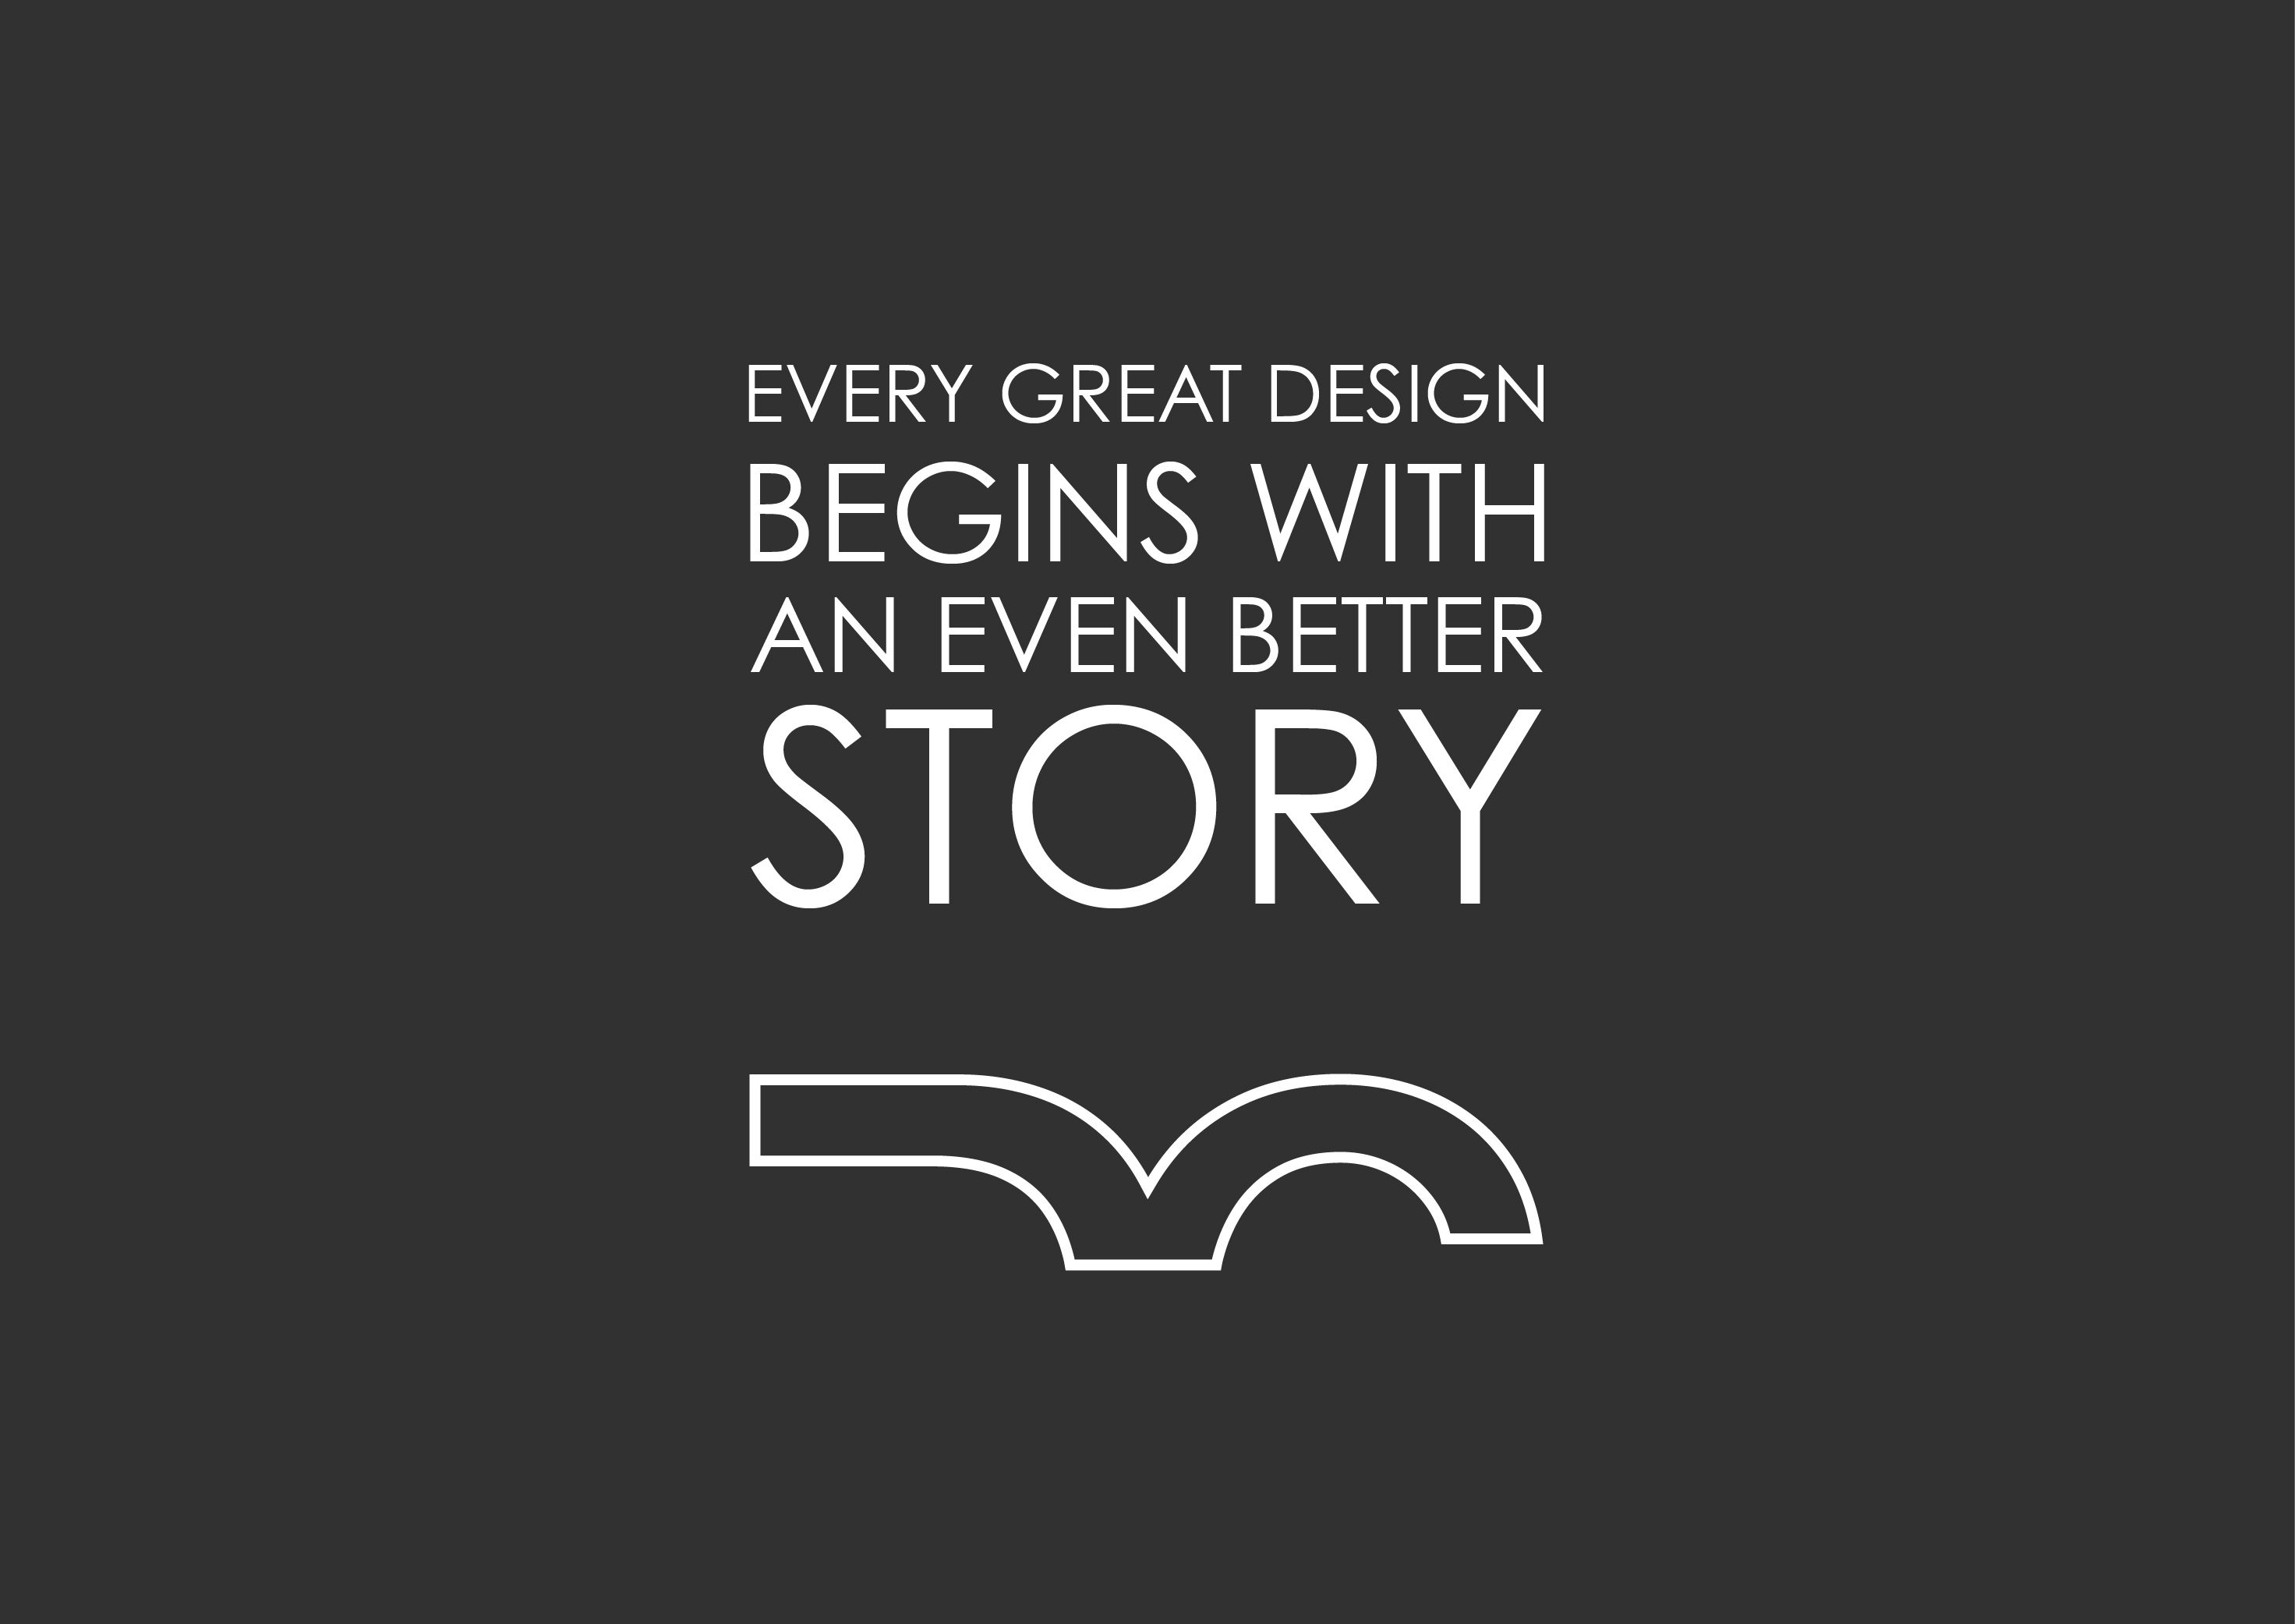 Design Quote Interesting Every Great Design Begins With An Even Better Story  Design